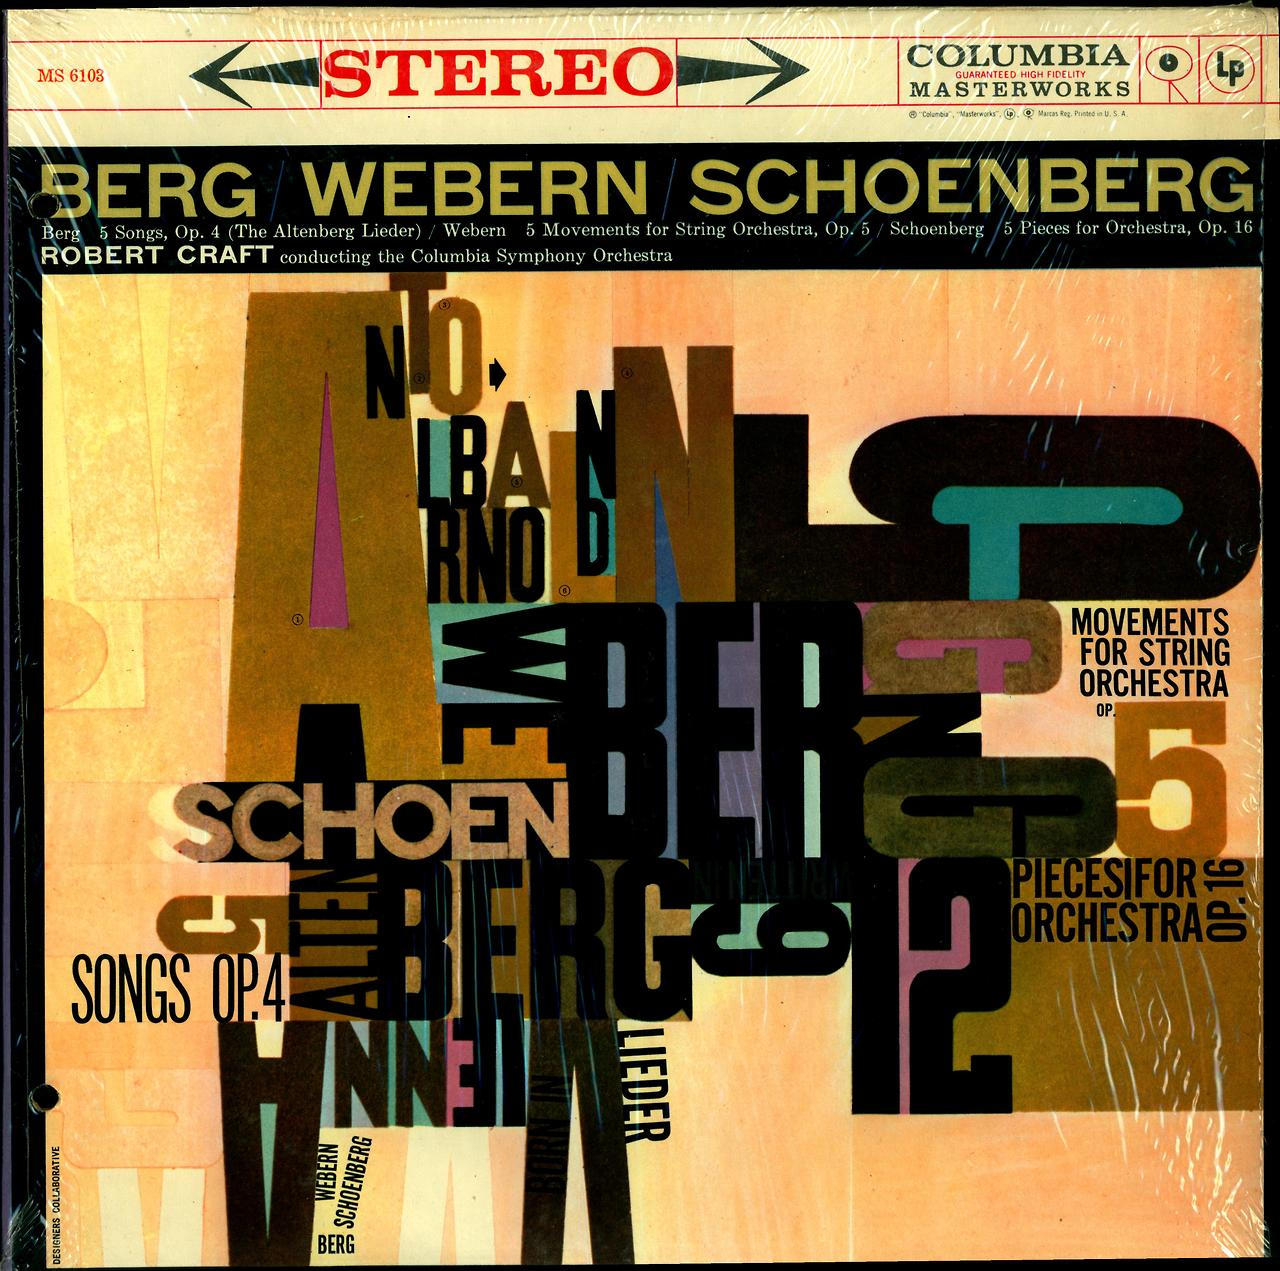 Berg- 5 Songs, op. 4 Webern 5 Movements for String Orchestra, op. 5 Schoenberg- 5 Pieces for Orchestra, op. 16  Columbia Symphony Orchestra, Robert Craft, cond.   Columbia Masterworks MS 6103  Cover Art by Designers Collective